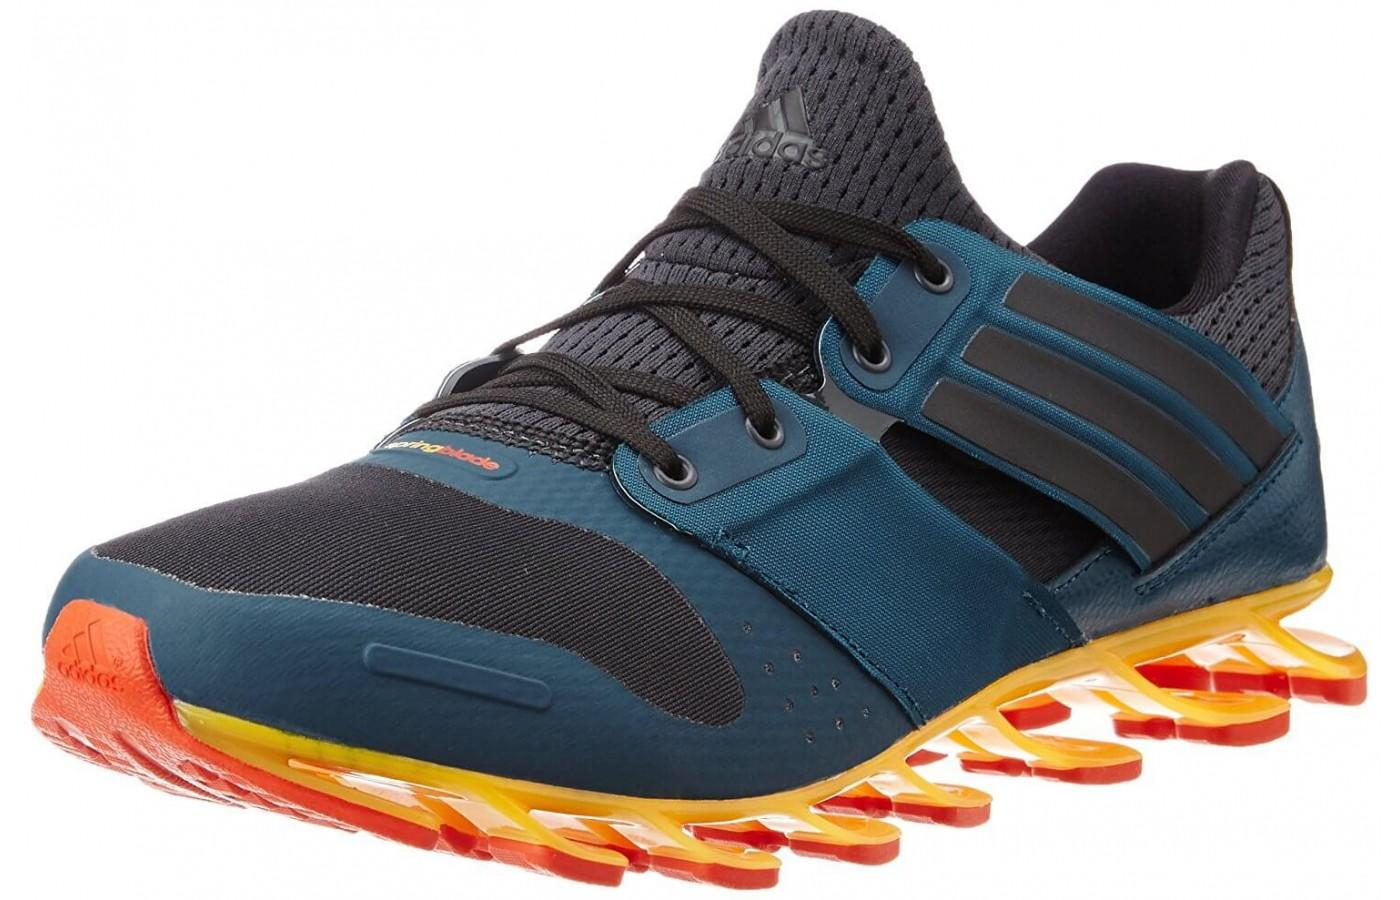 Adidas Springblade Solyce reviewed and tested